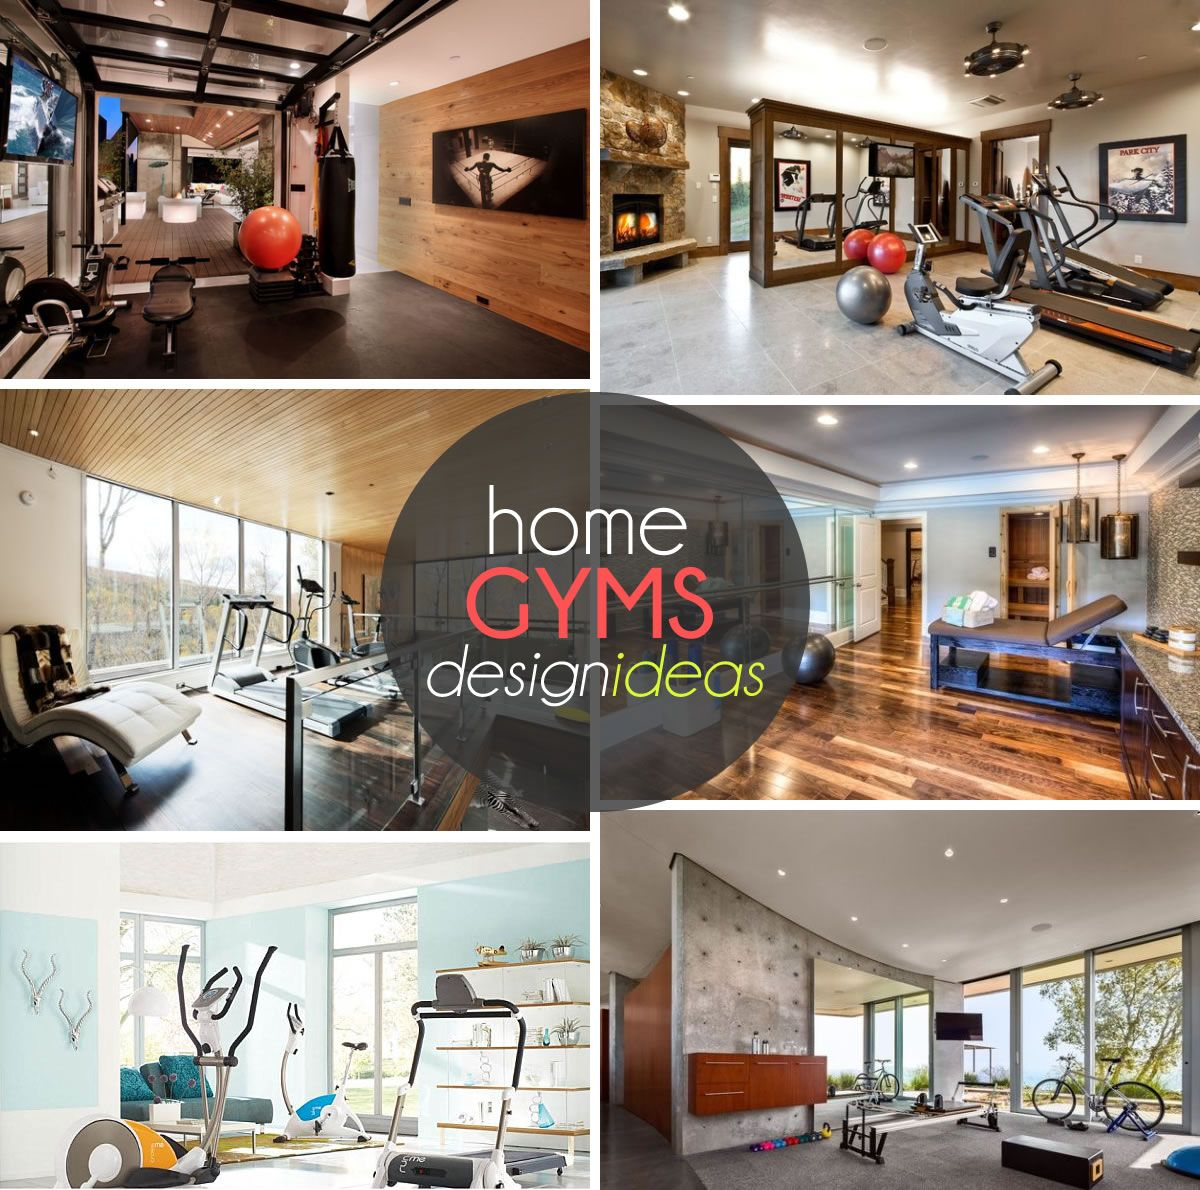 Gym design on pinterest gym interior fitness design and Home gym decor ideas